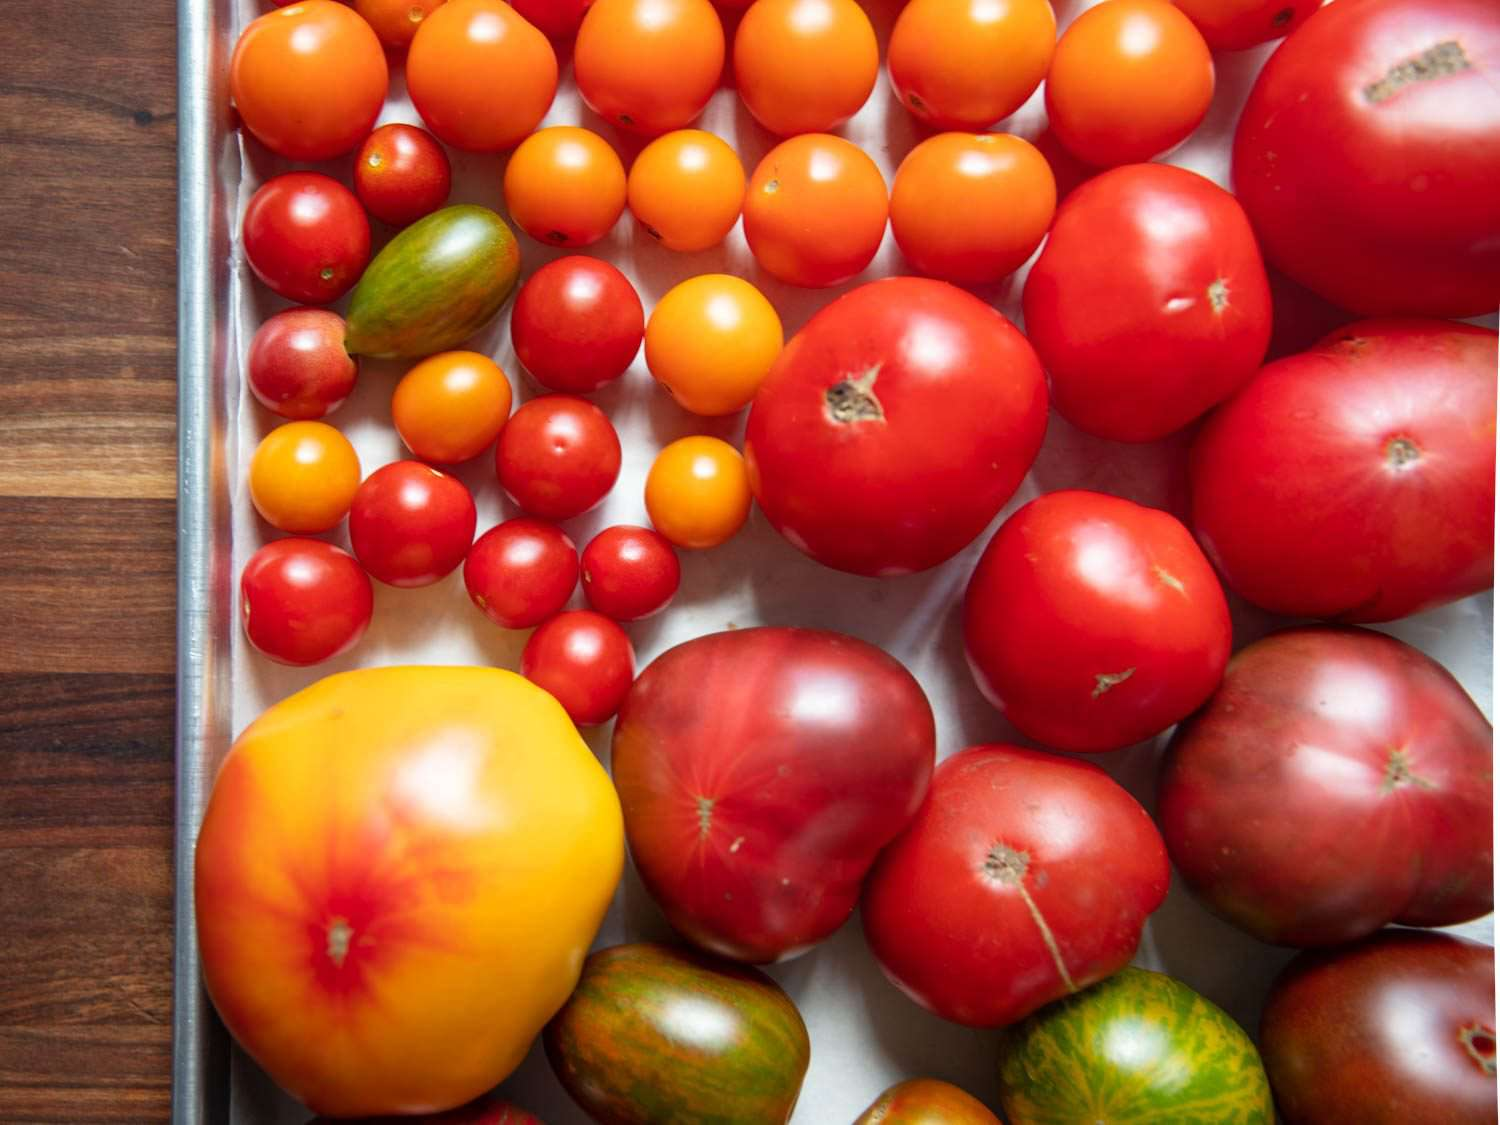 Closeup overhead of a tray of tomatoes of different colors and sizes.